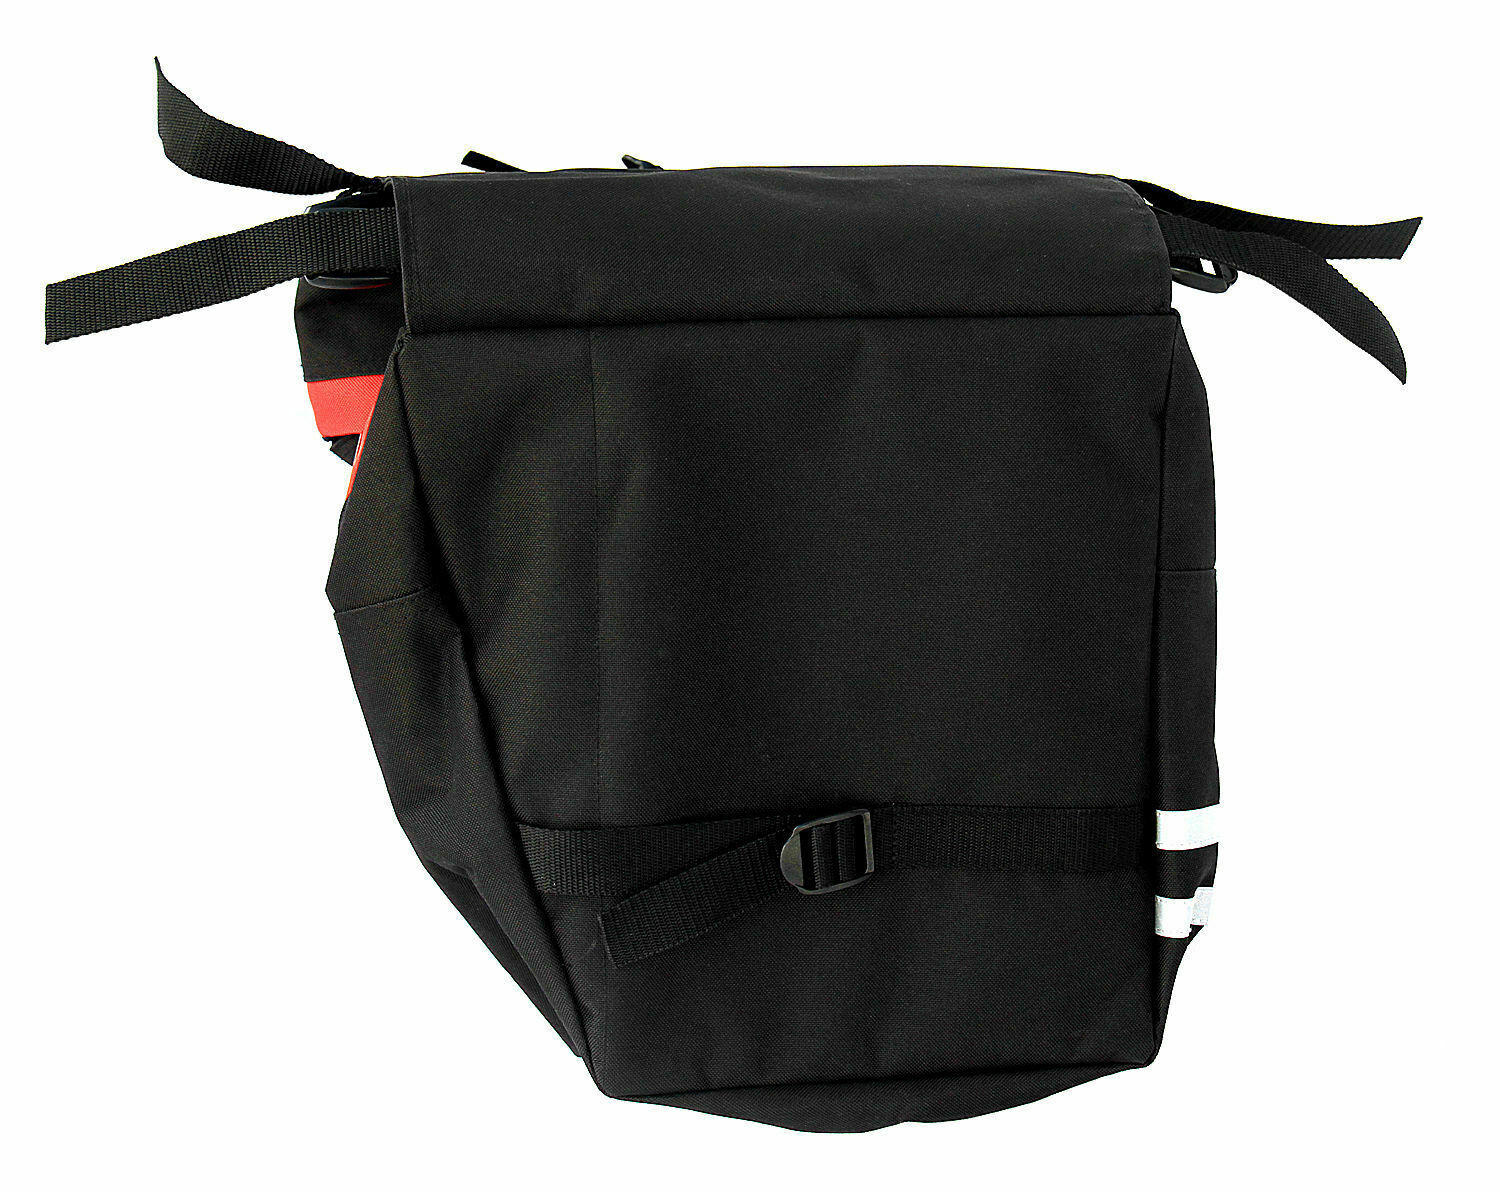 3ac26adfb7db VENZO 600D 34L Bike Bicycle Water Proof Pannier Bag